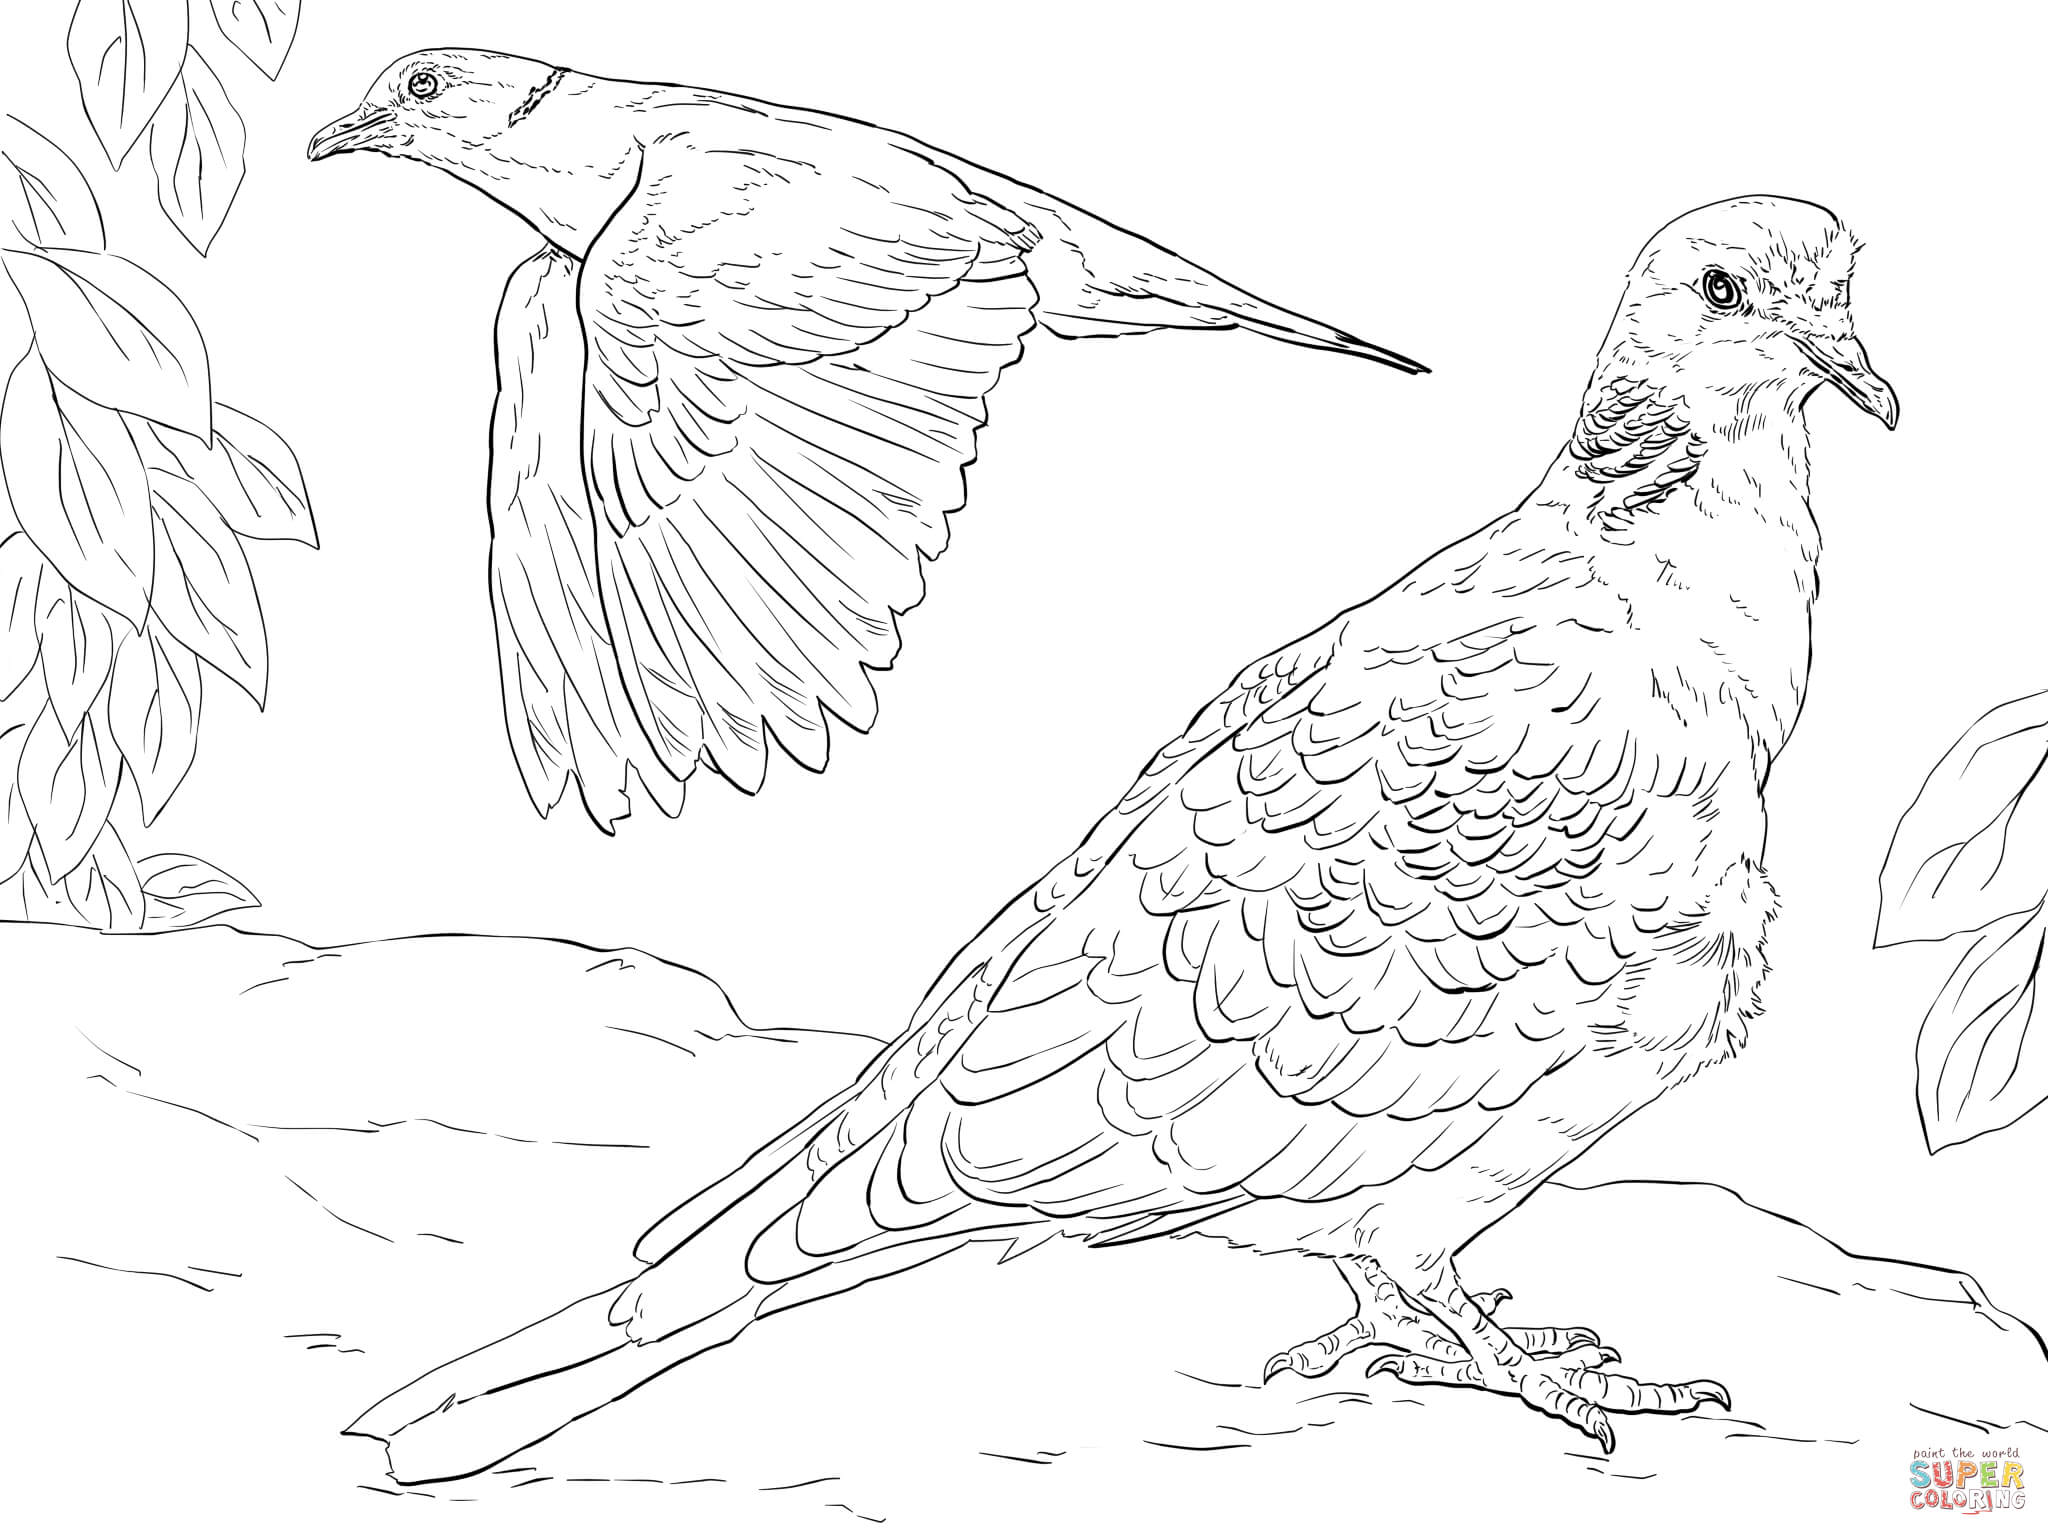 Turtle Dove coloring, Download Turtle Dove coloring for ...